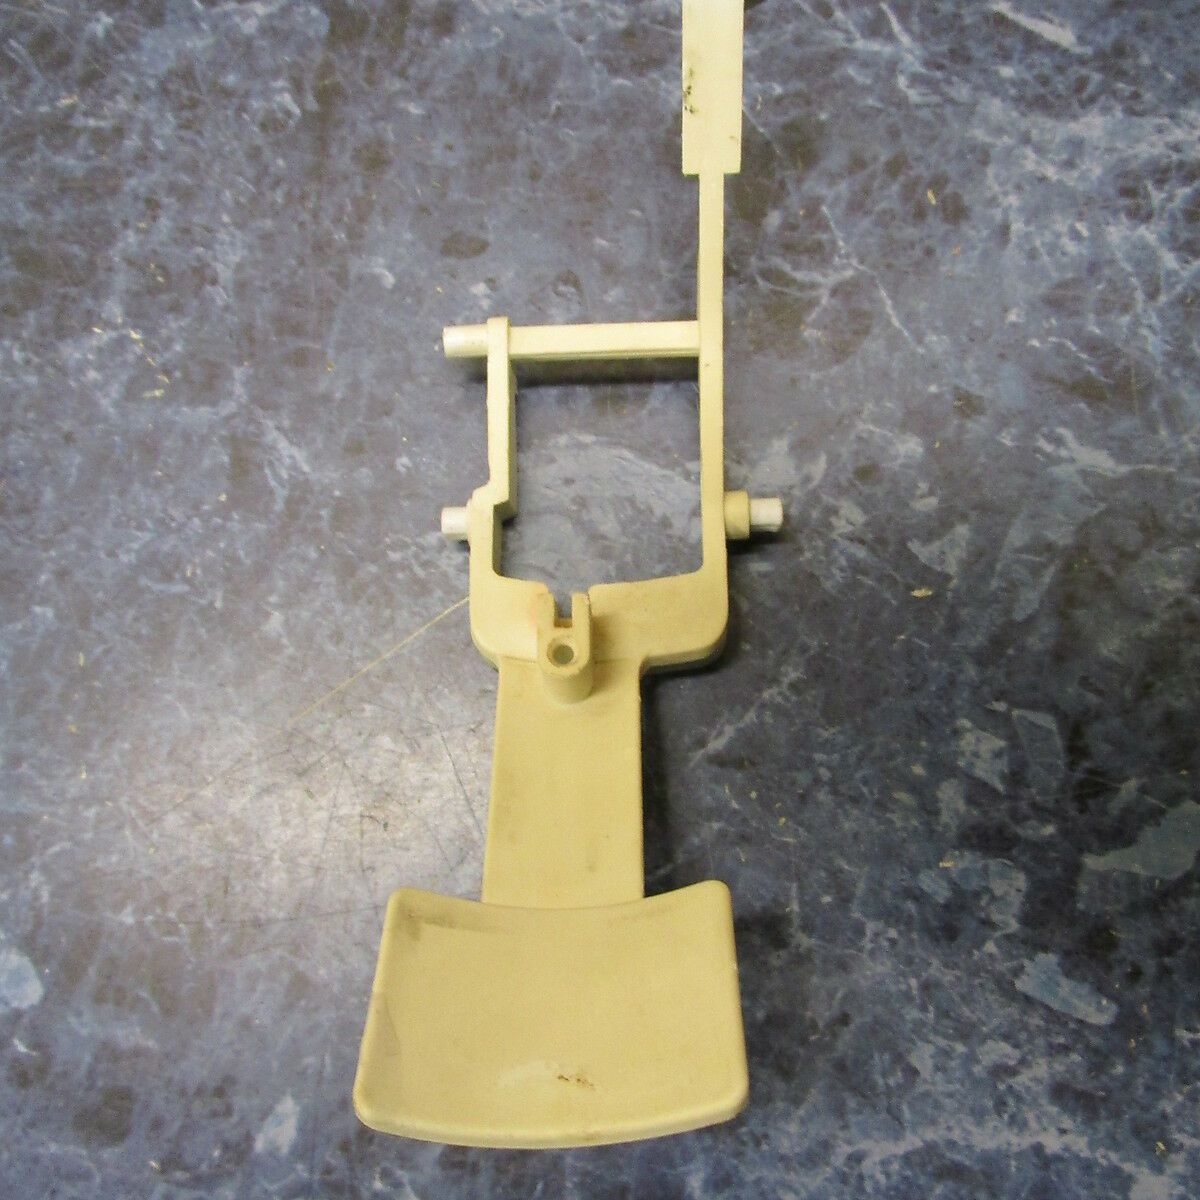 WHIRLPOOL REFRIGERATOR WATER LEVER PART # 2195090T